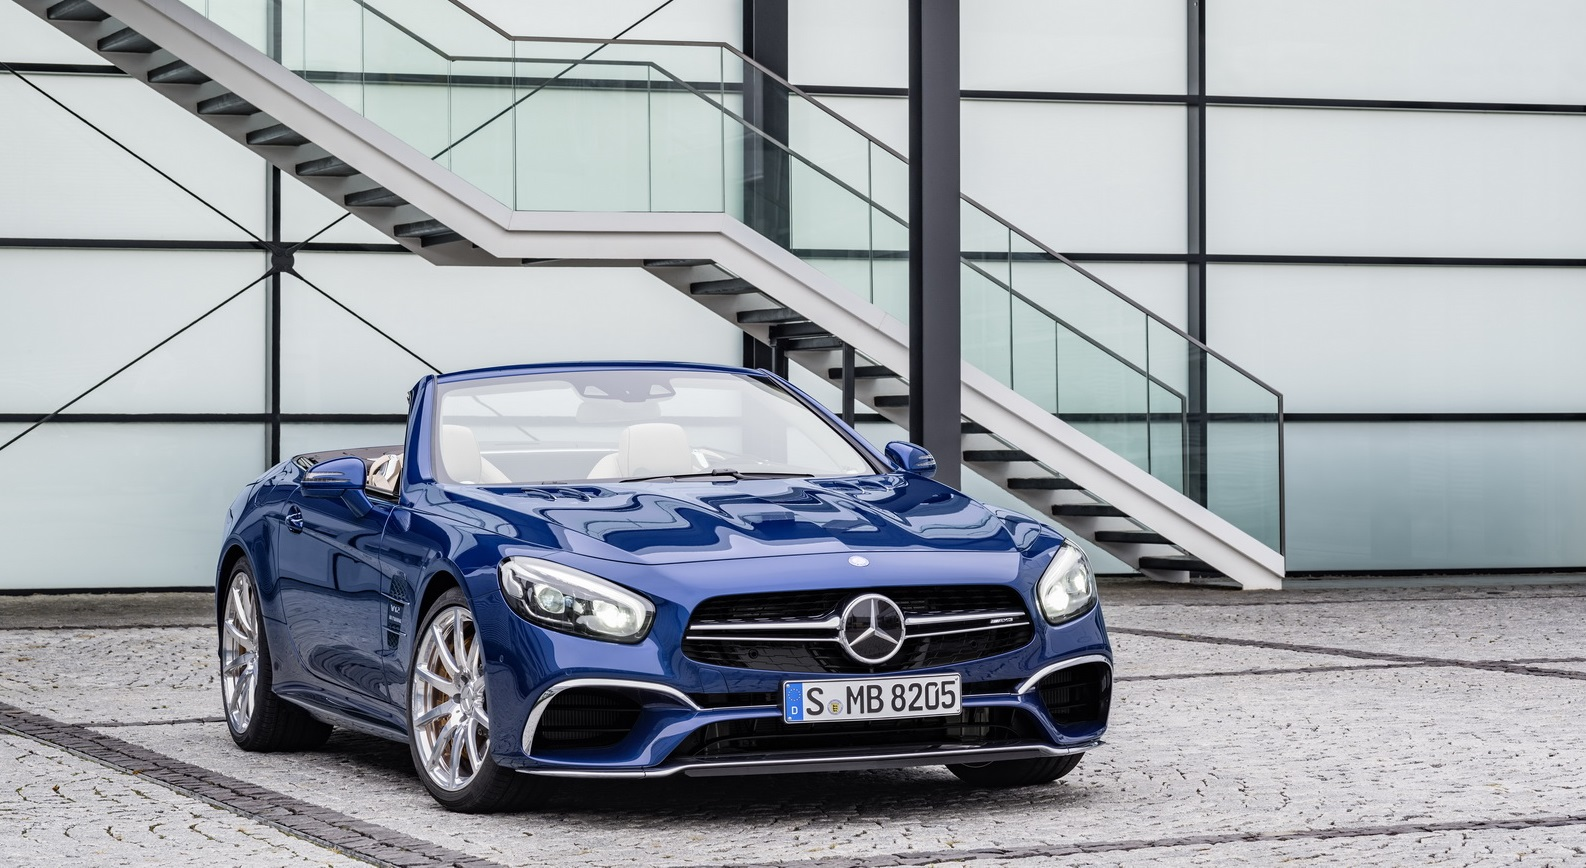 2017 Mercedes-Benz SL прошел рестайлинг фото